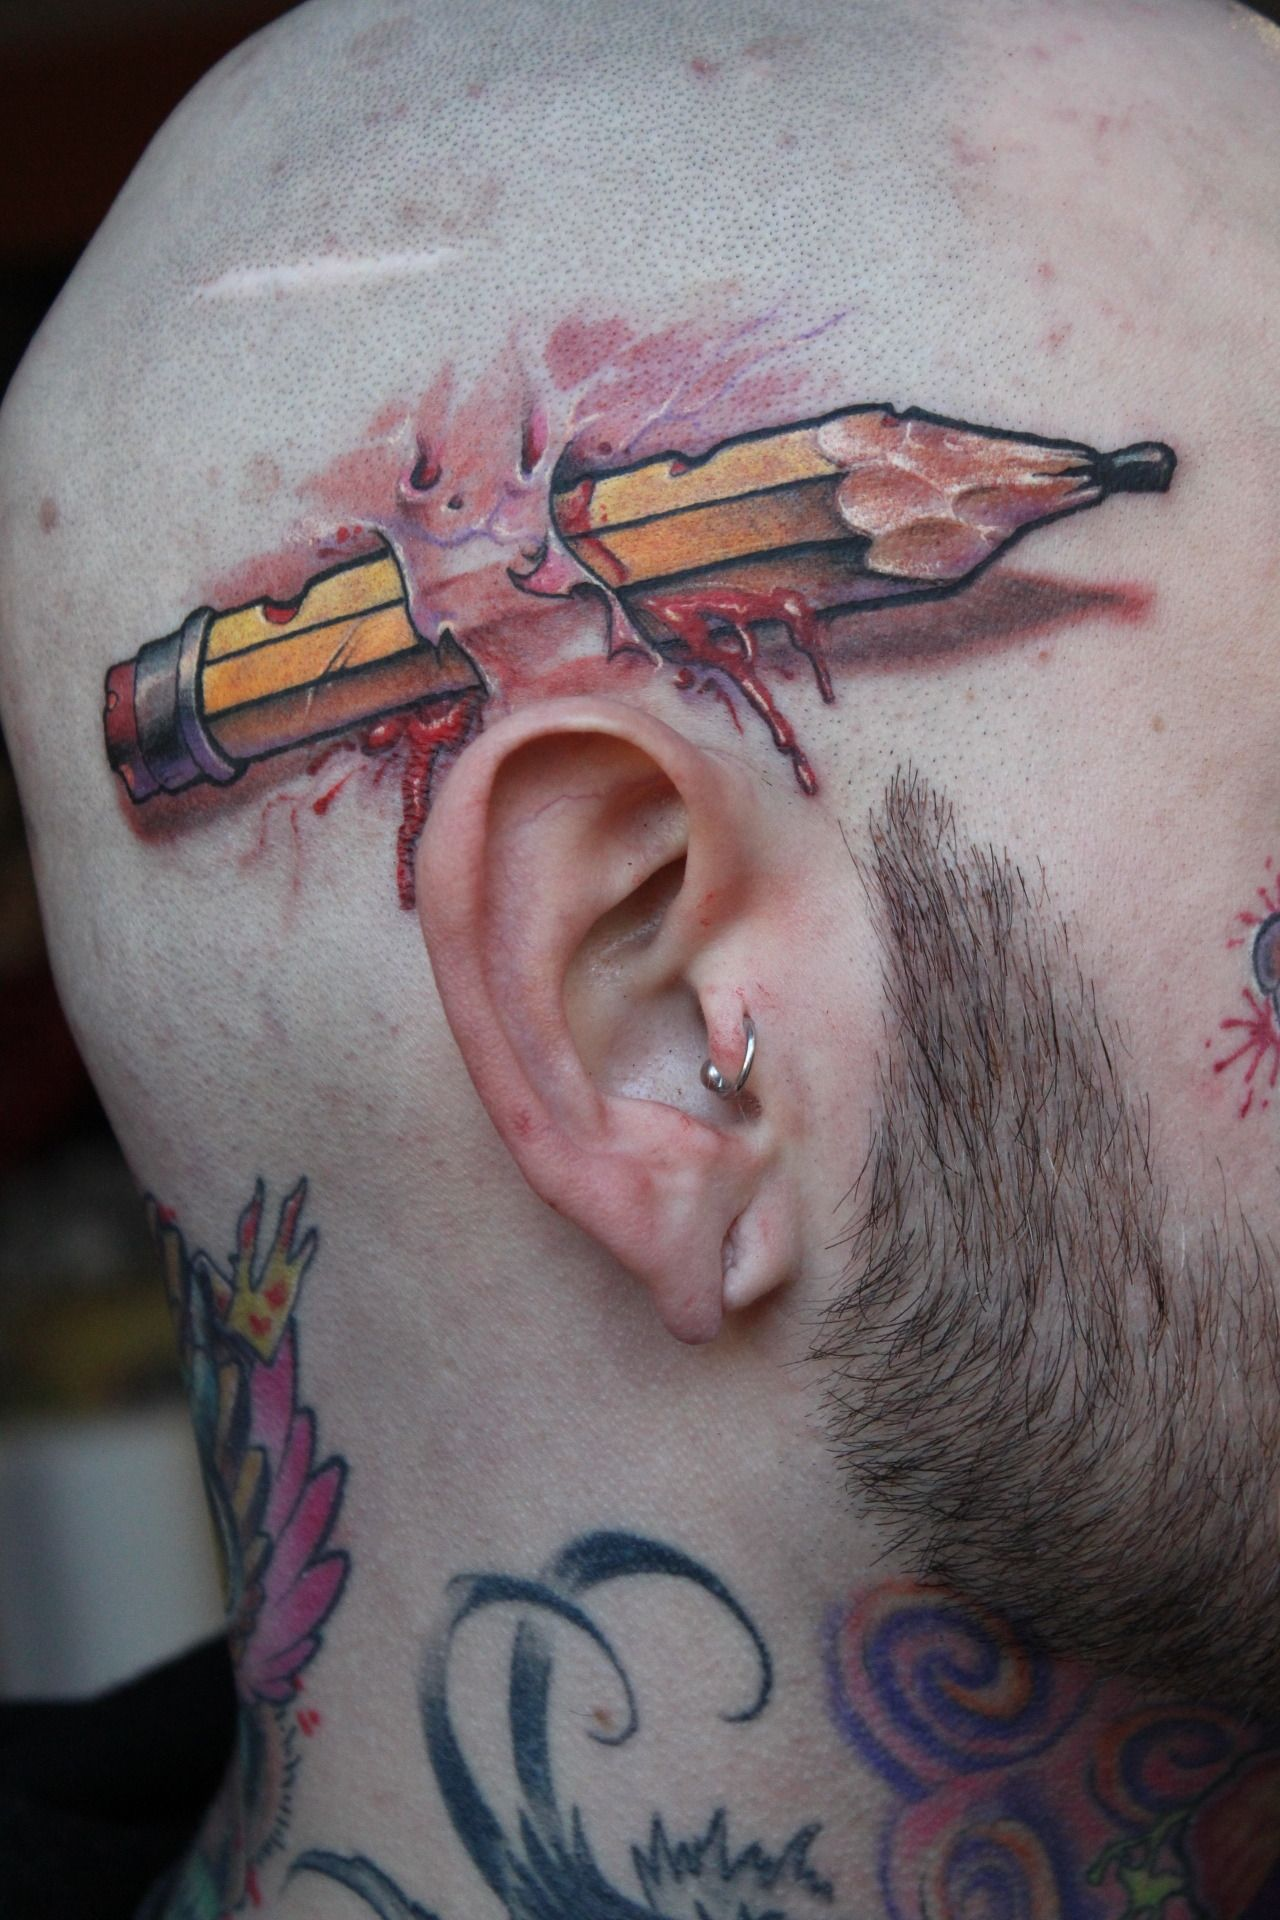 Unusual Tattoos by Renown Spanish Artist Victor Chil